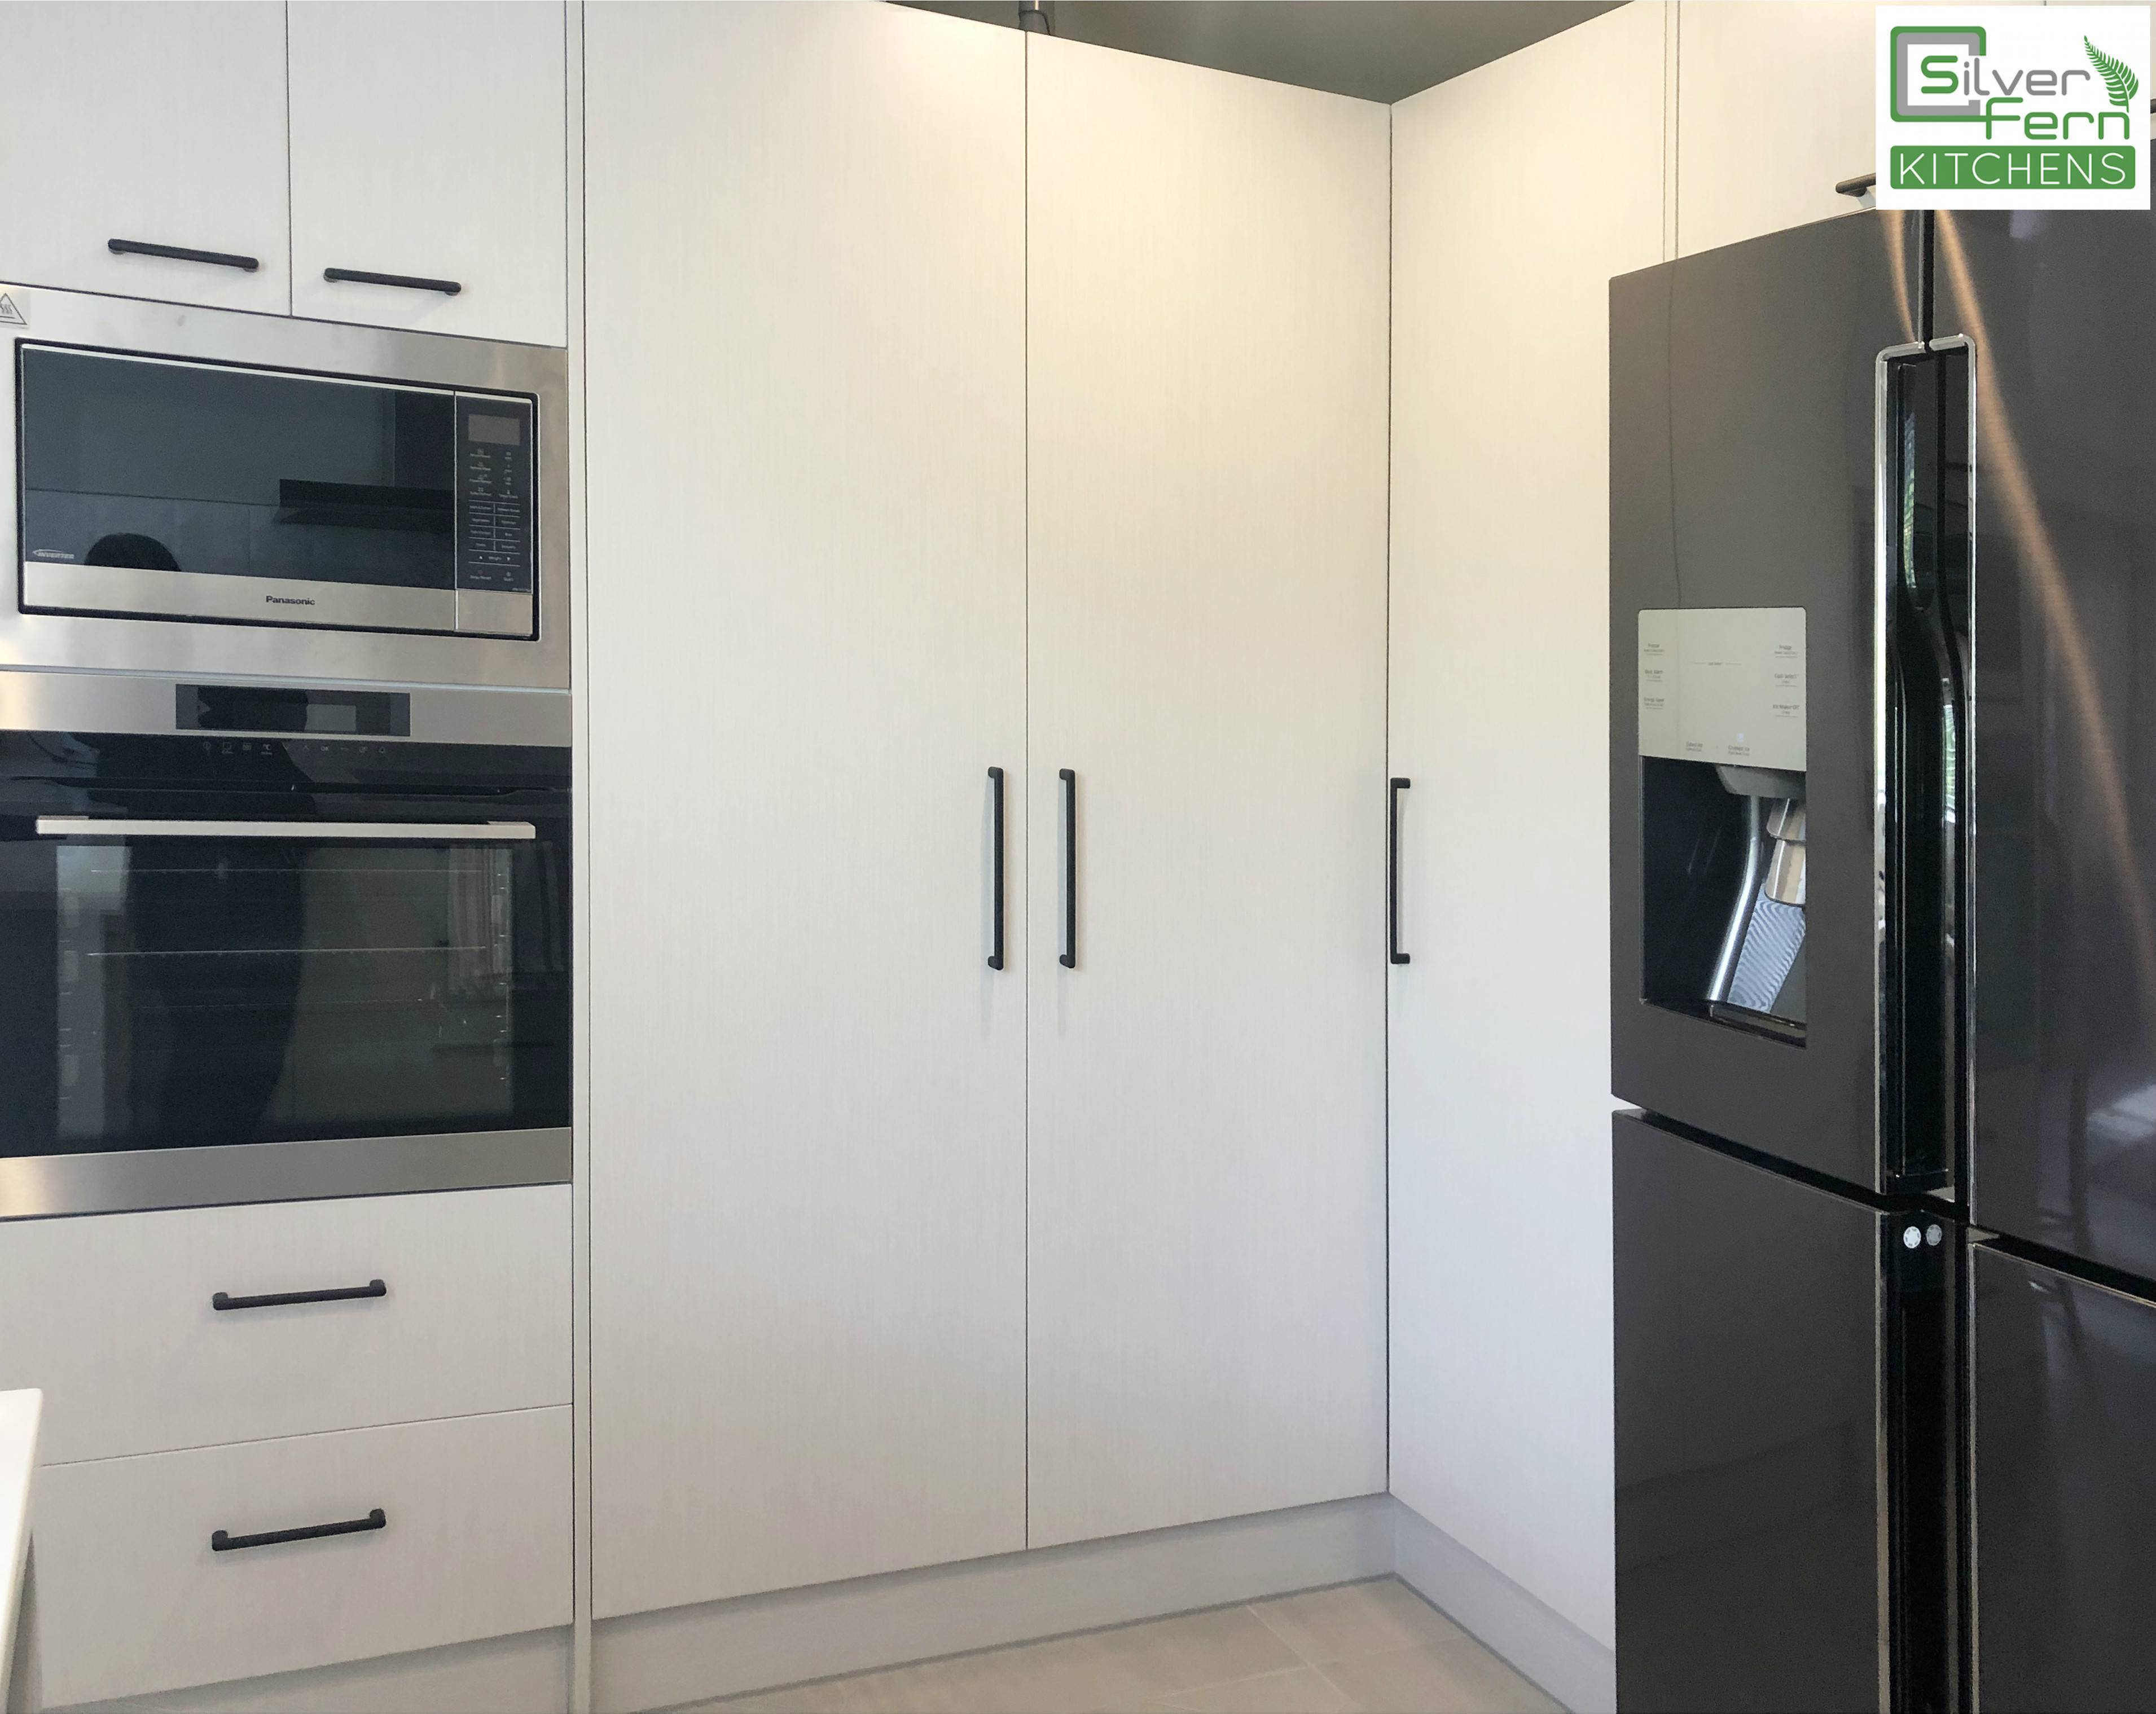 Kitchen Transformation in Avonhead